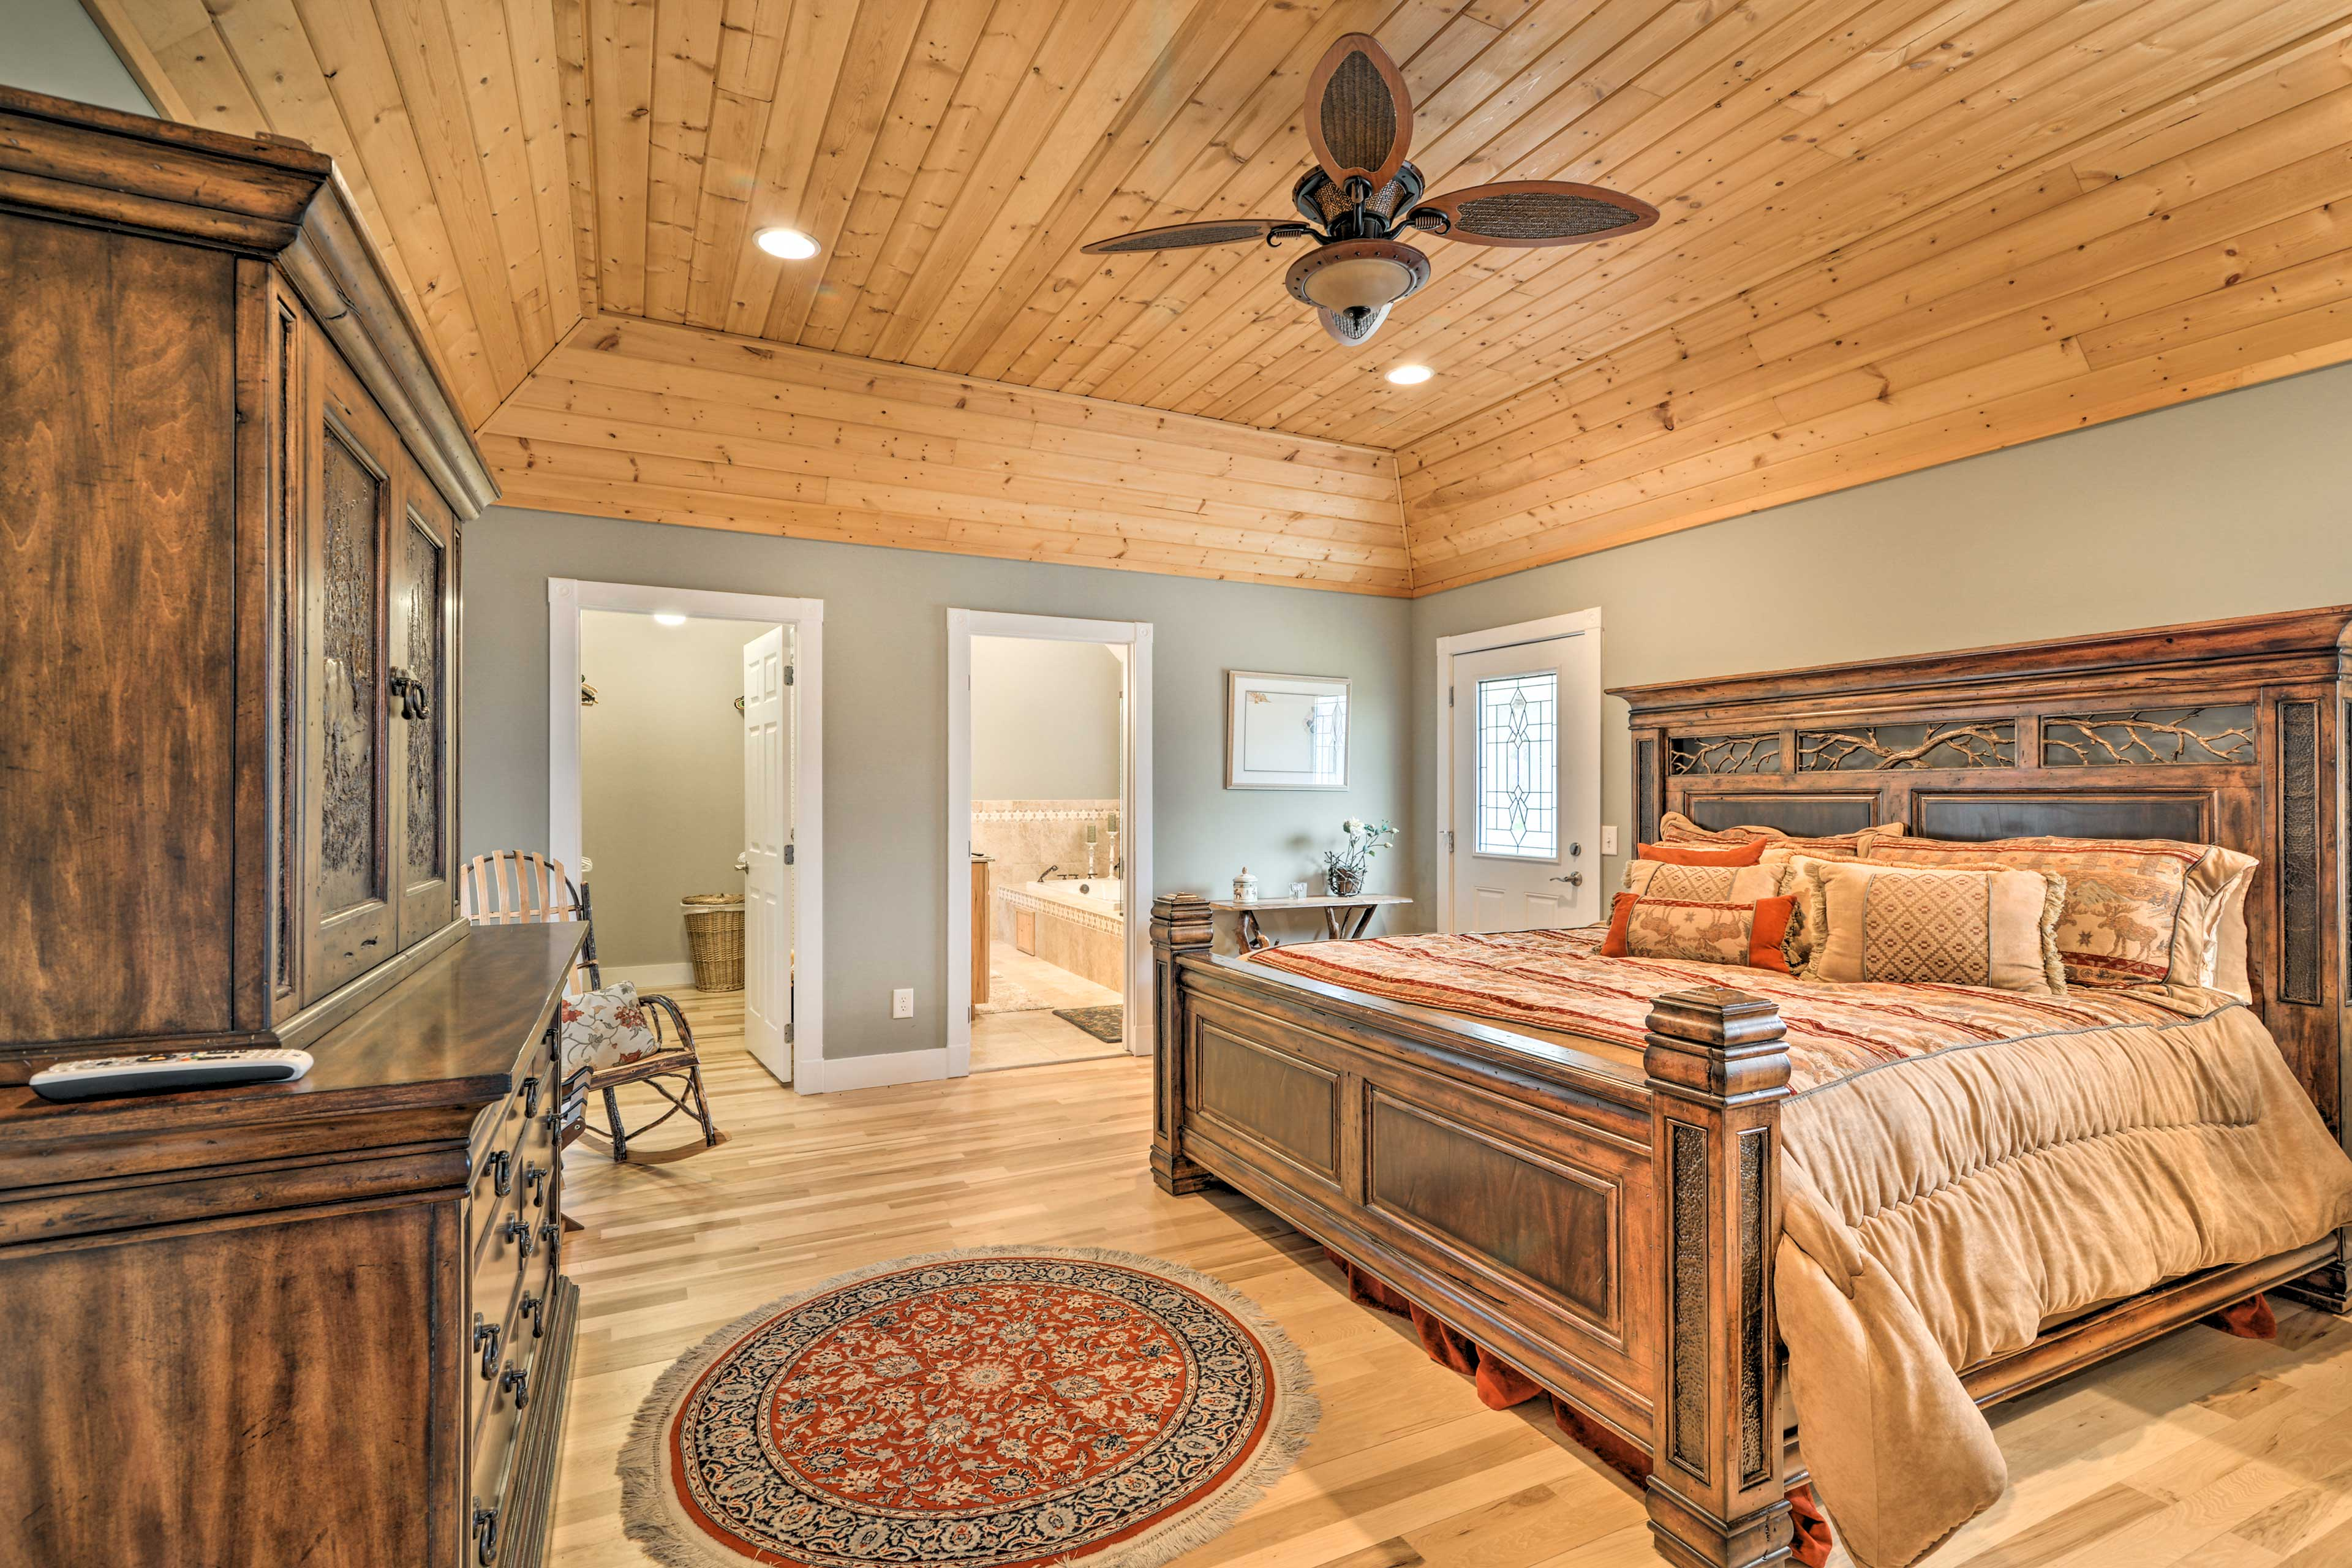 The master bedroom hosts a walk-in closet and private bathroom.